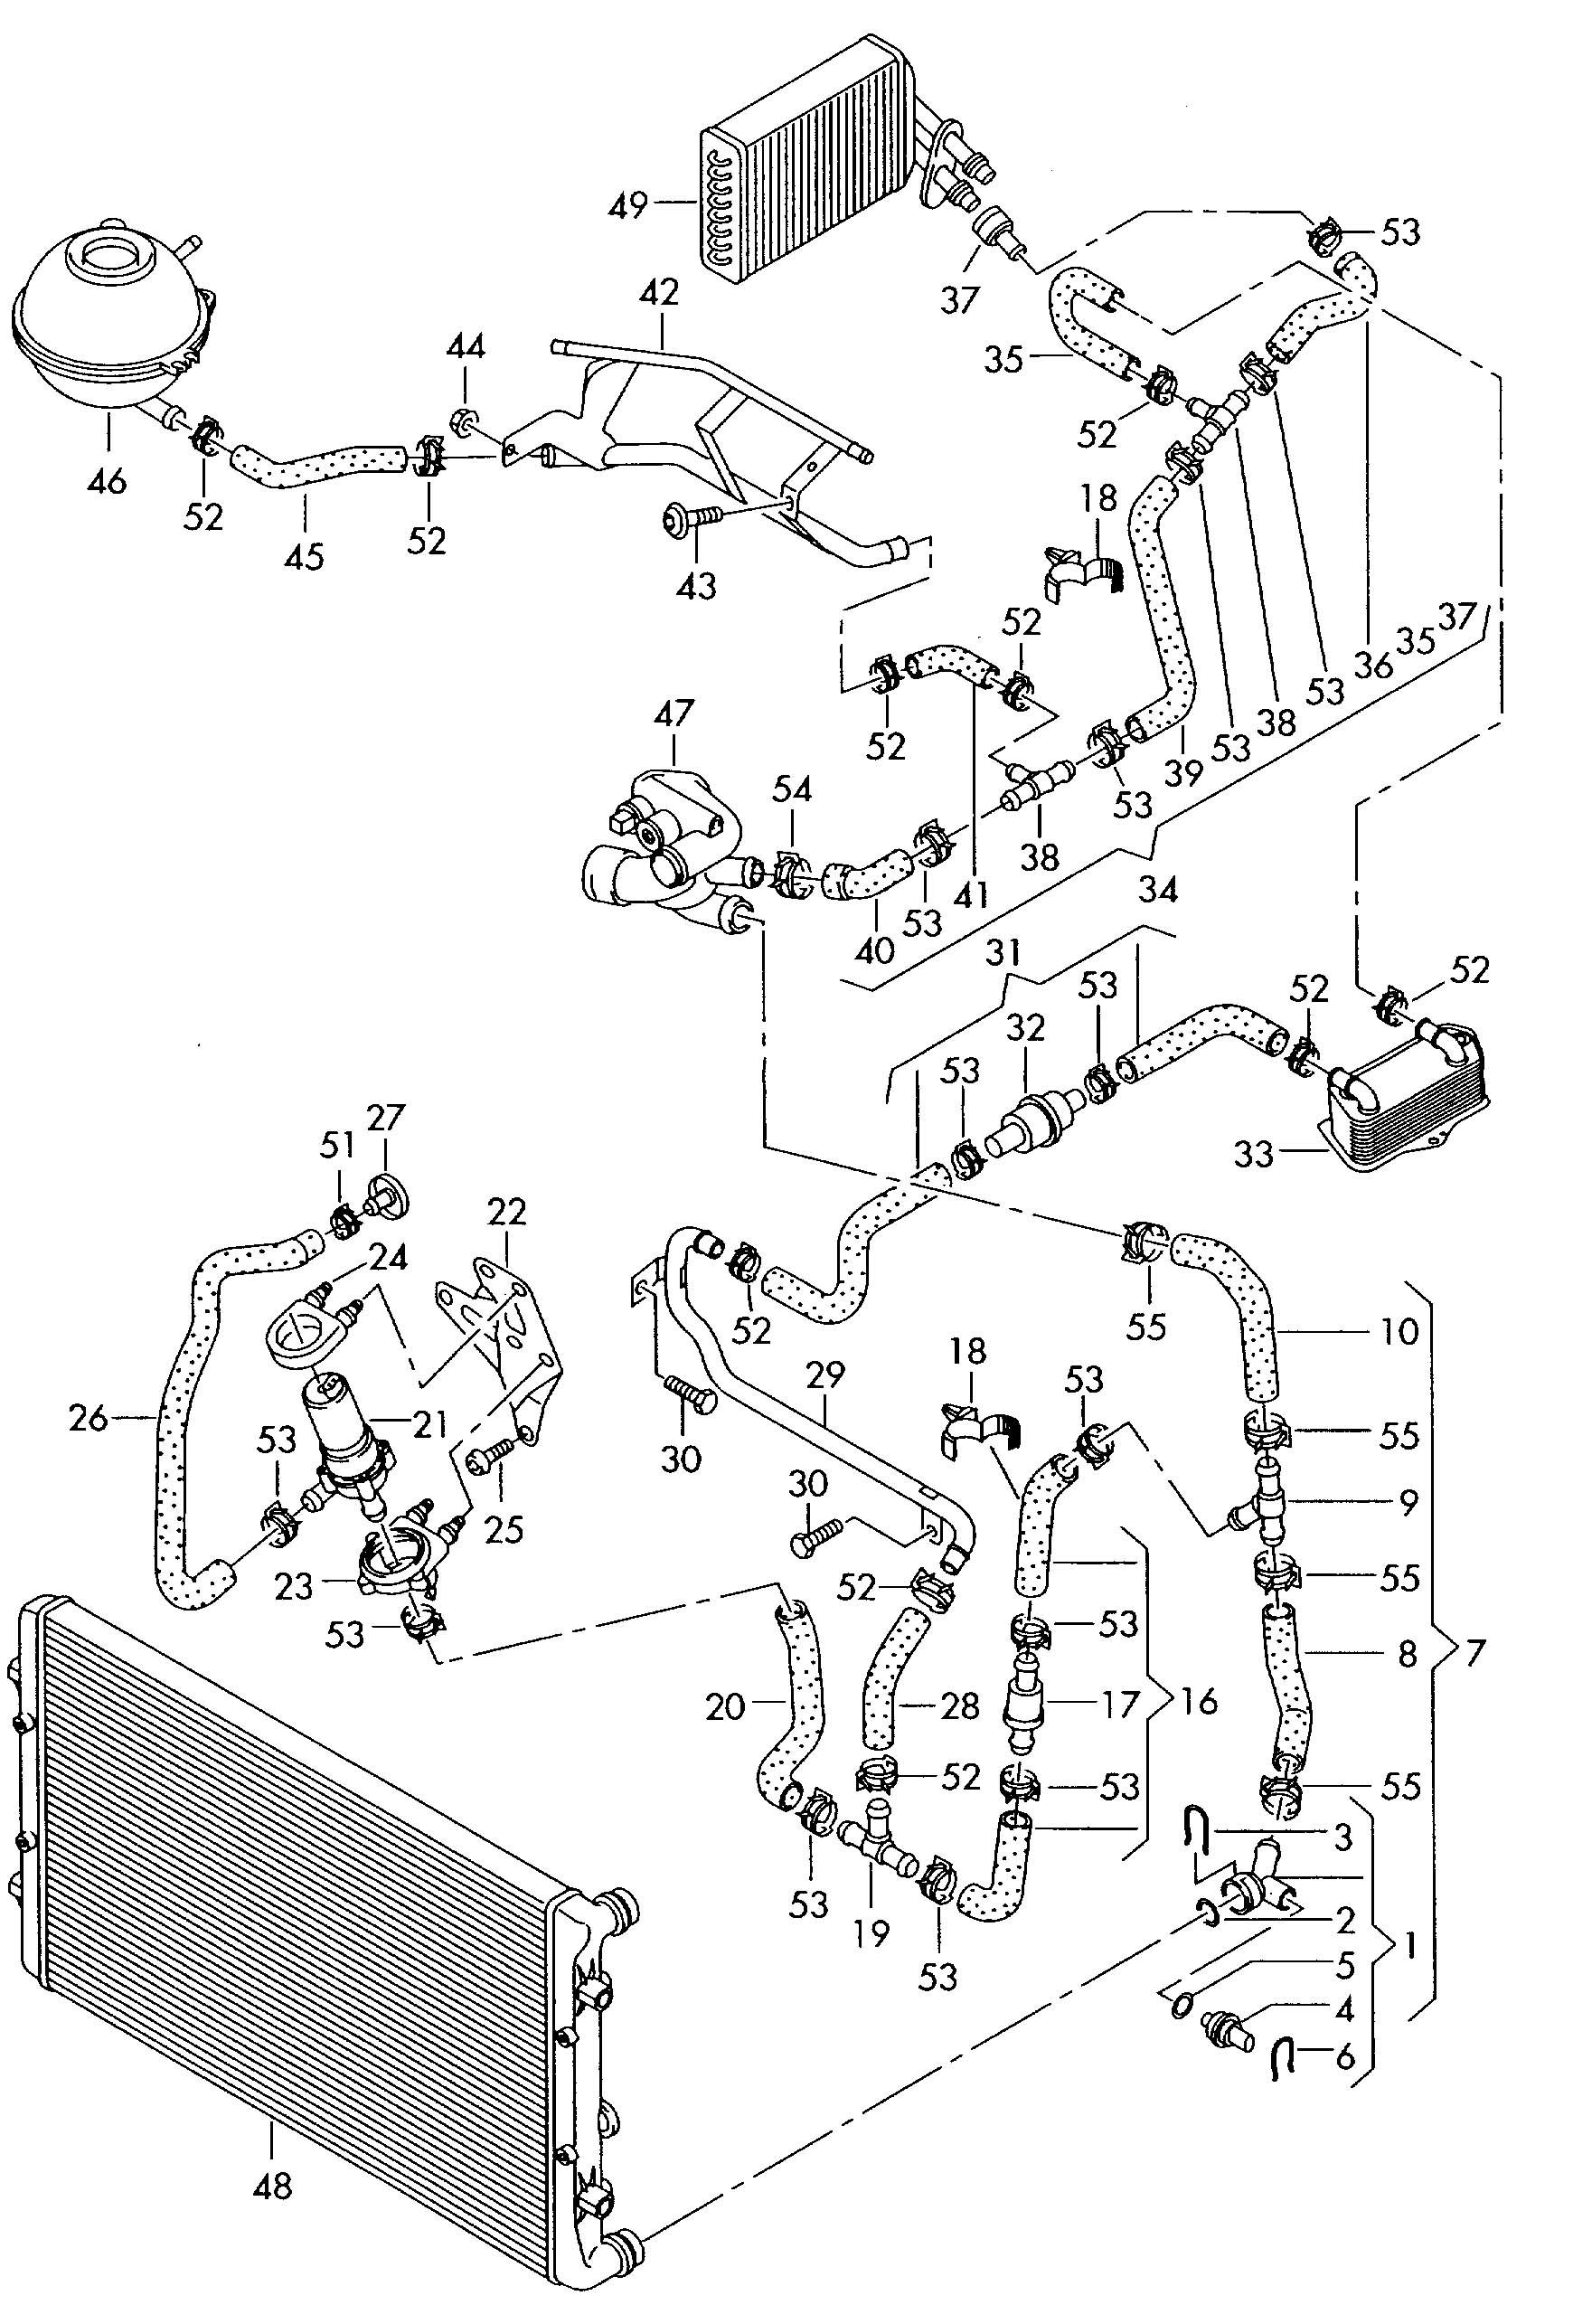 2003 audi a4 cooling system diagram